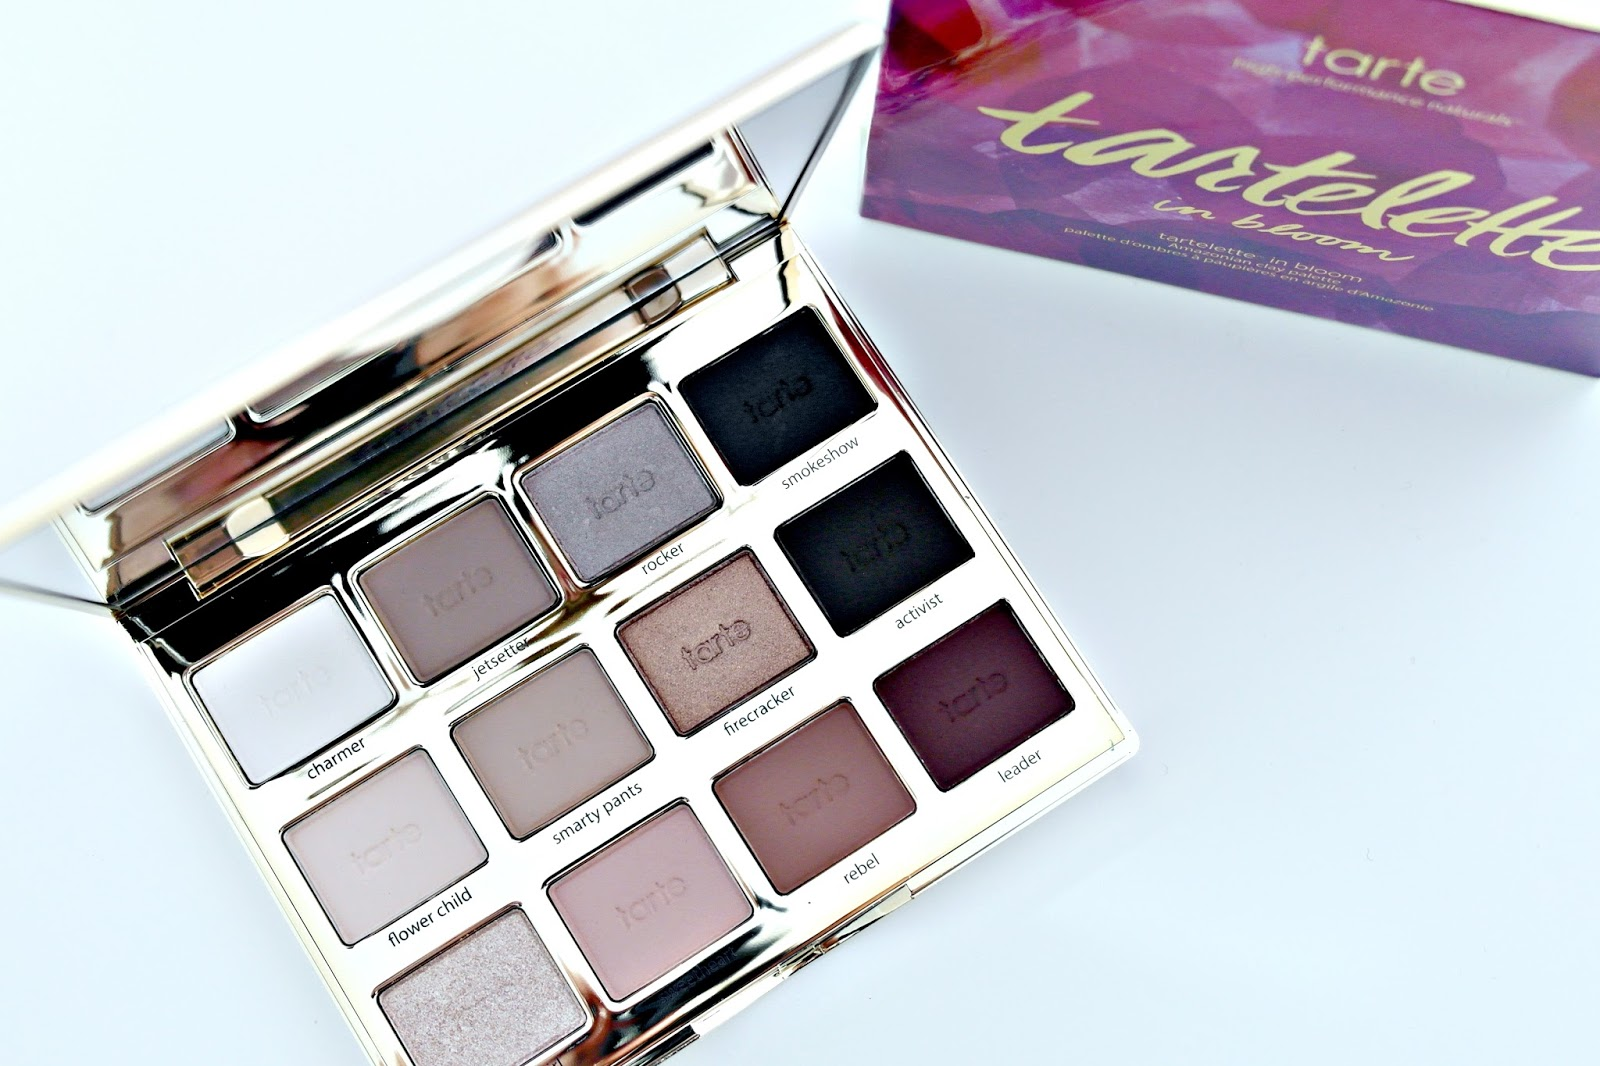 Tarte Tartelette 2 in bloom palette review